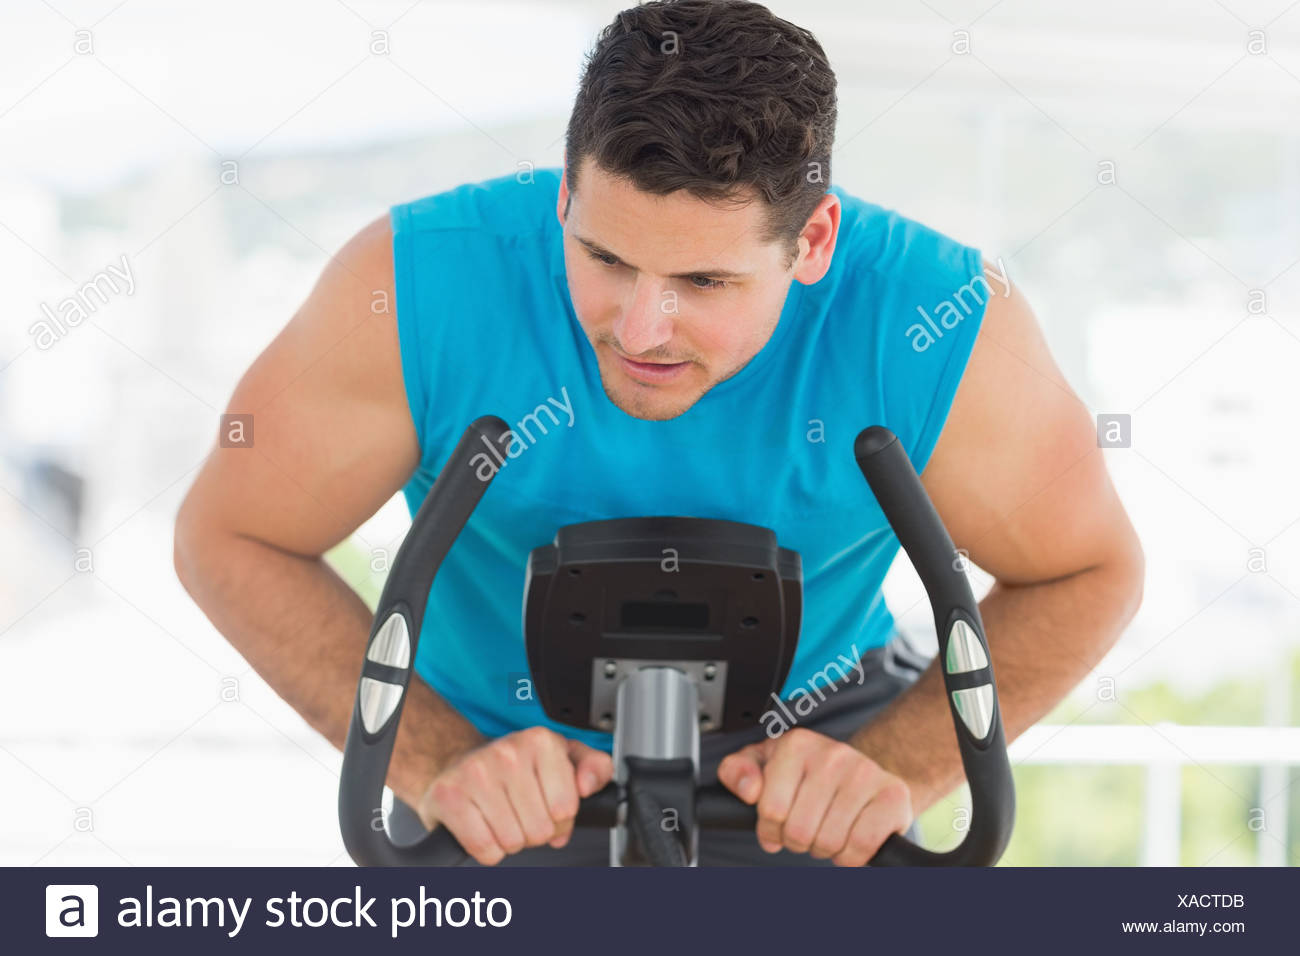 Serious man working out at spinning class - Stock Image